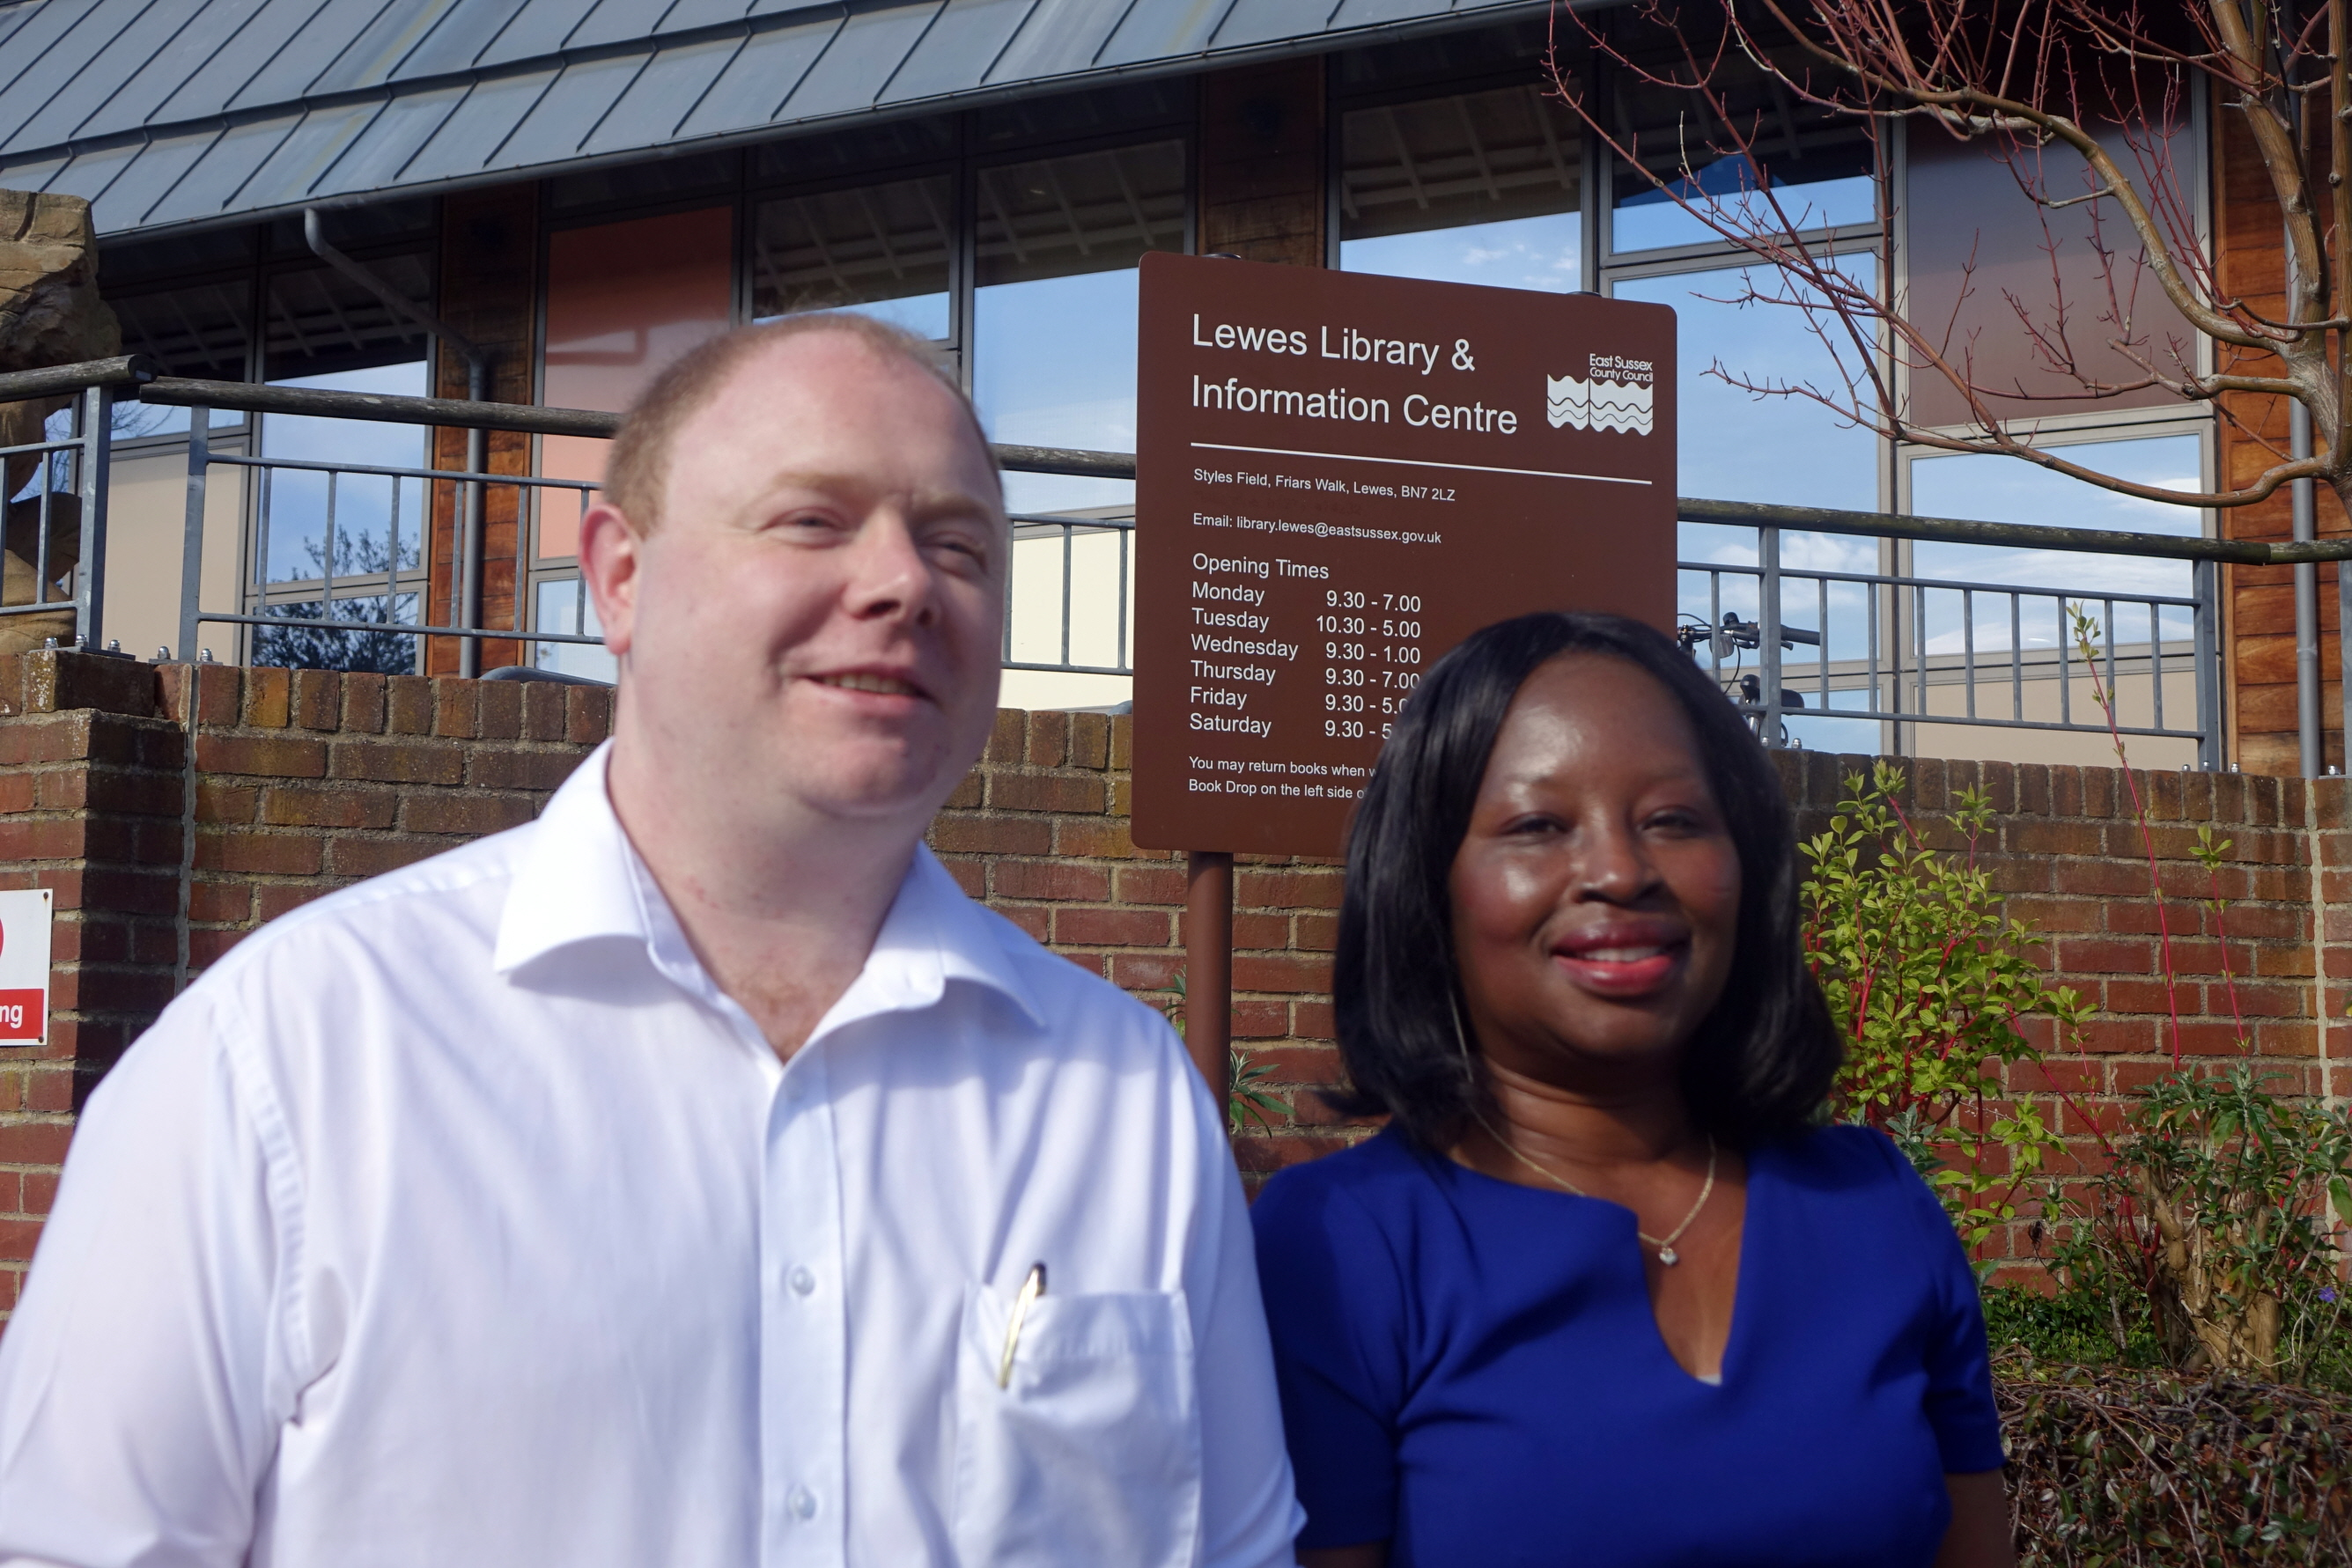 Cllr_Will_Elliott_and_Janet_Baah_outside_Lewes_Library_small_pic.jpg